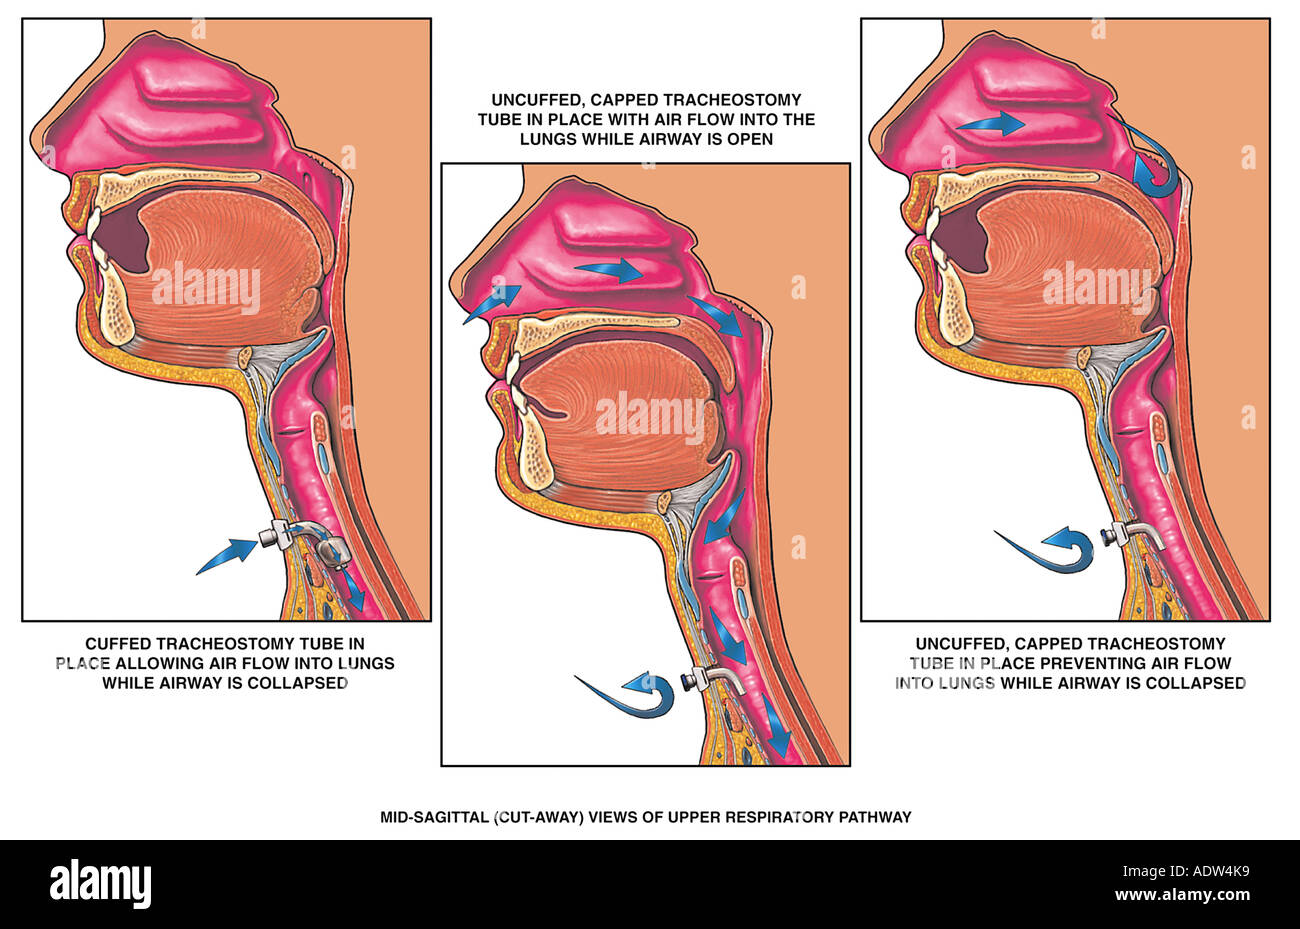 Asphyxiation Blockage of Airway due to Capped Cuffed Tracheostomy ...